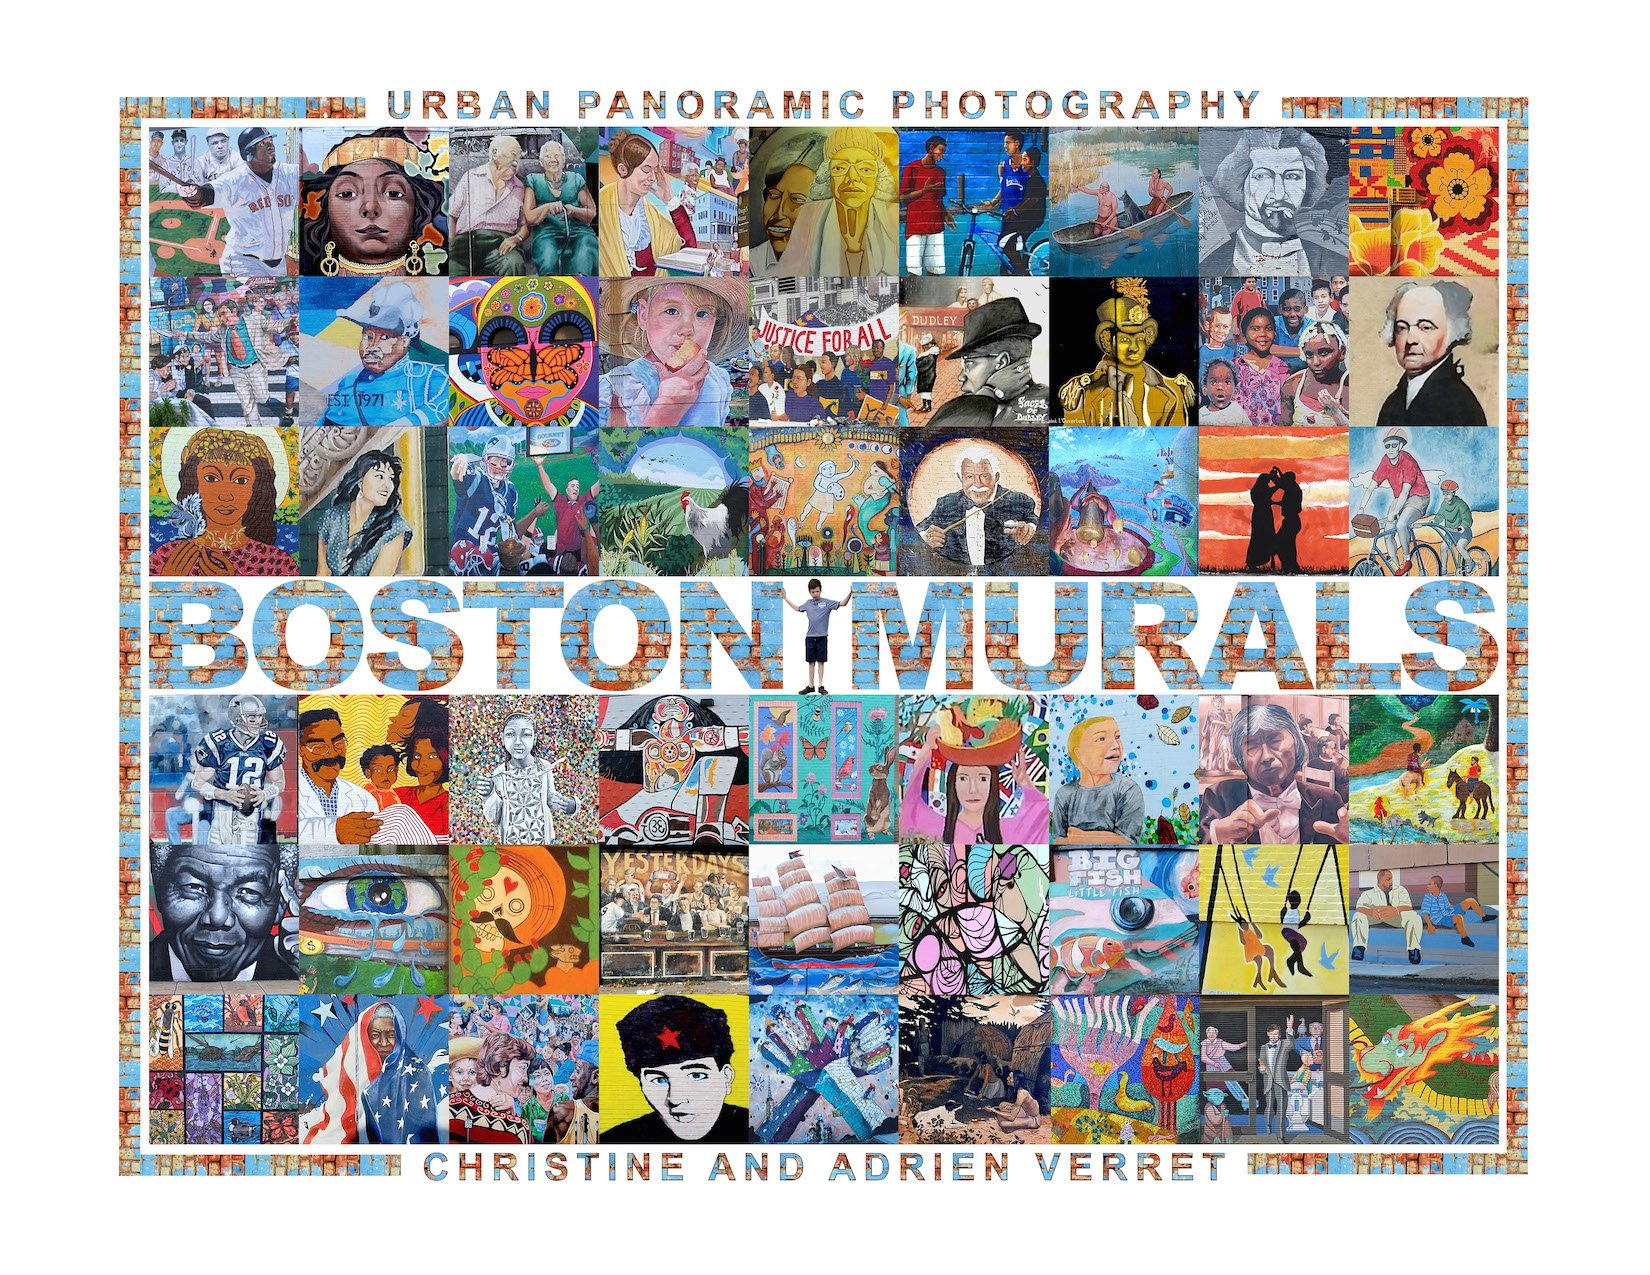 boston murals book by christine and adrien verret